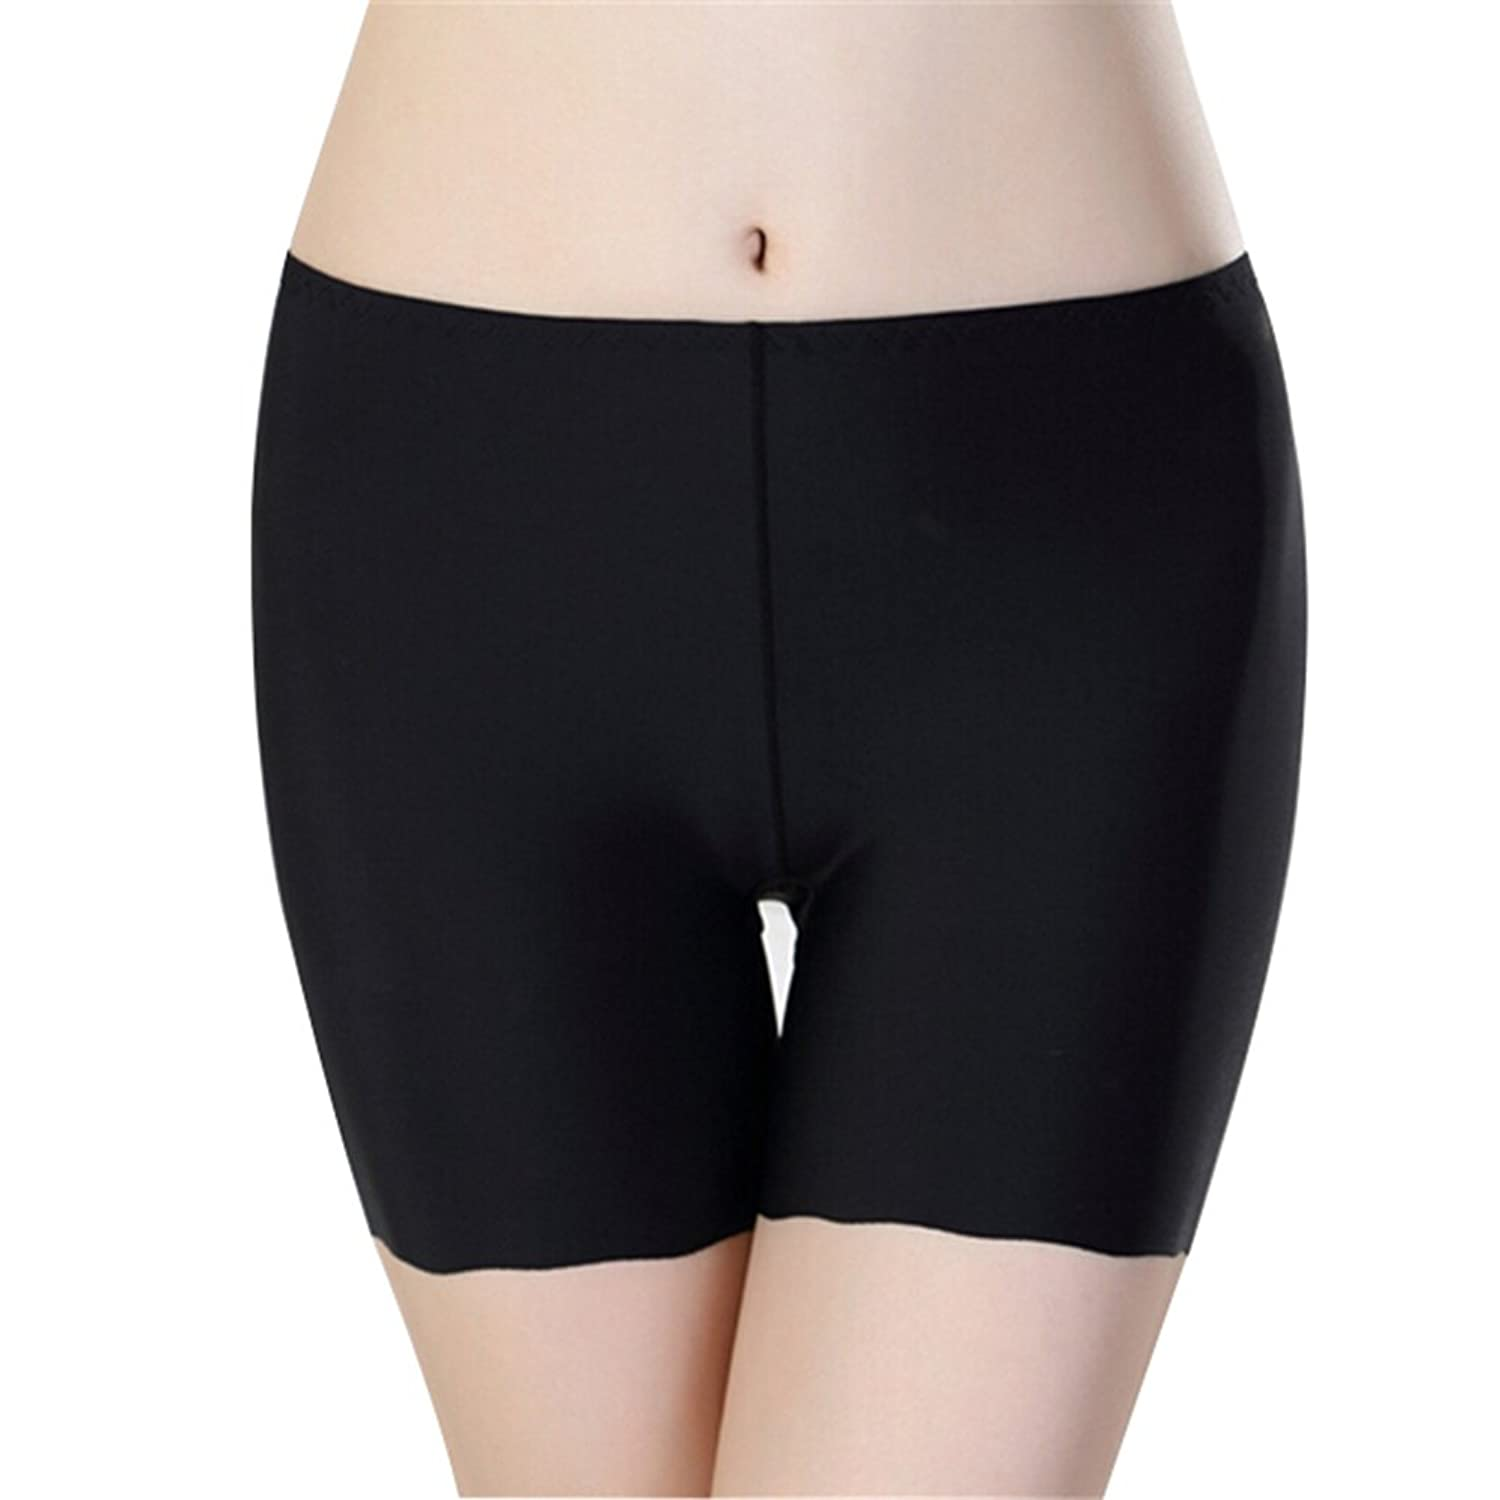 Hottong Women's Ice Silk Seamless Stretchy Boy Shorts Safety Panty Underwear